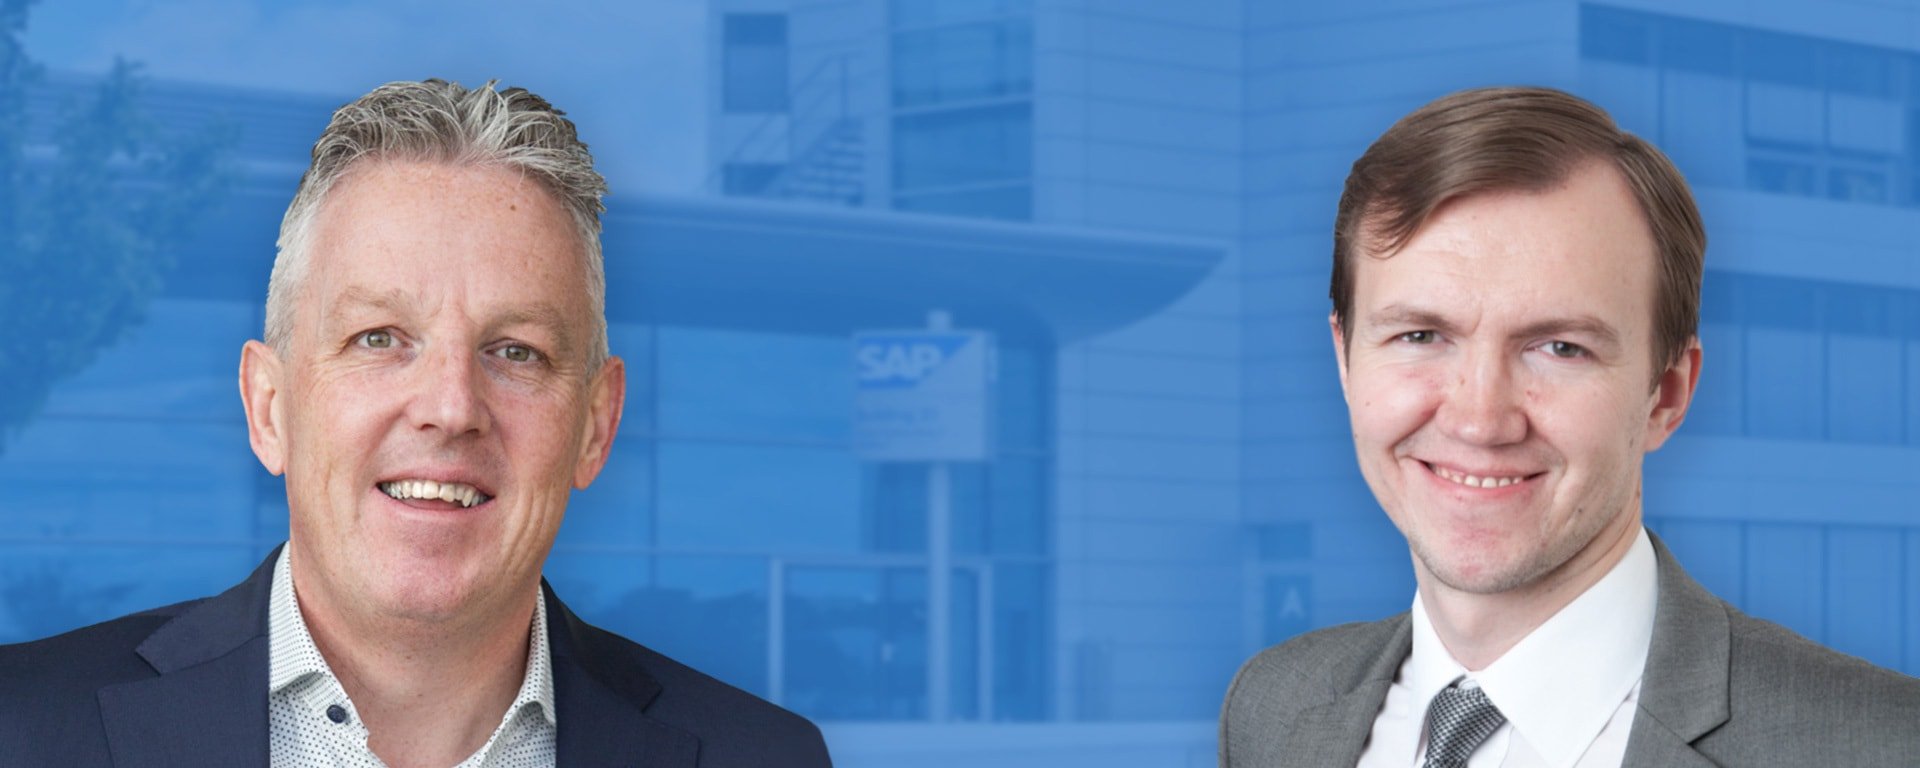 When Process Management Meets Human Resources - SAP interview Partners